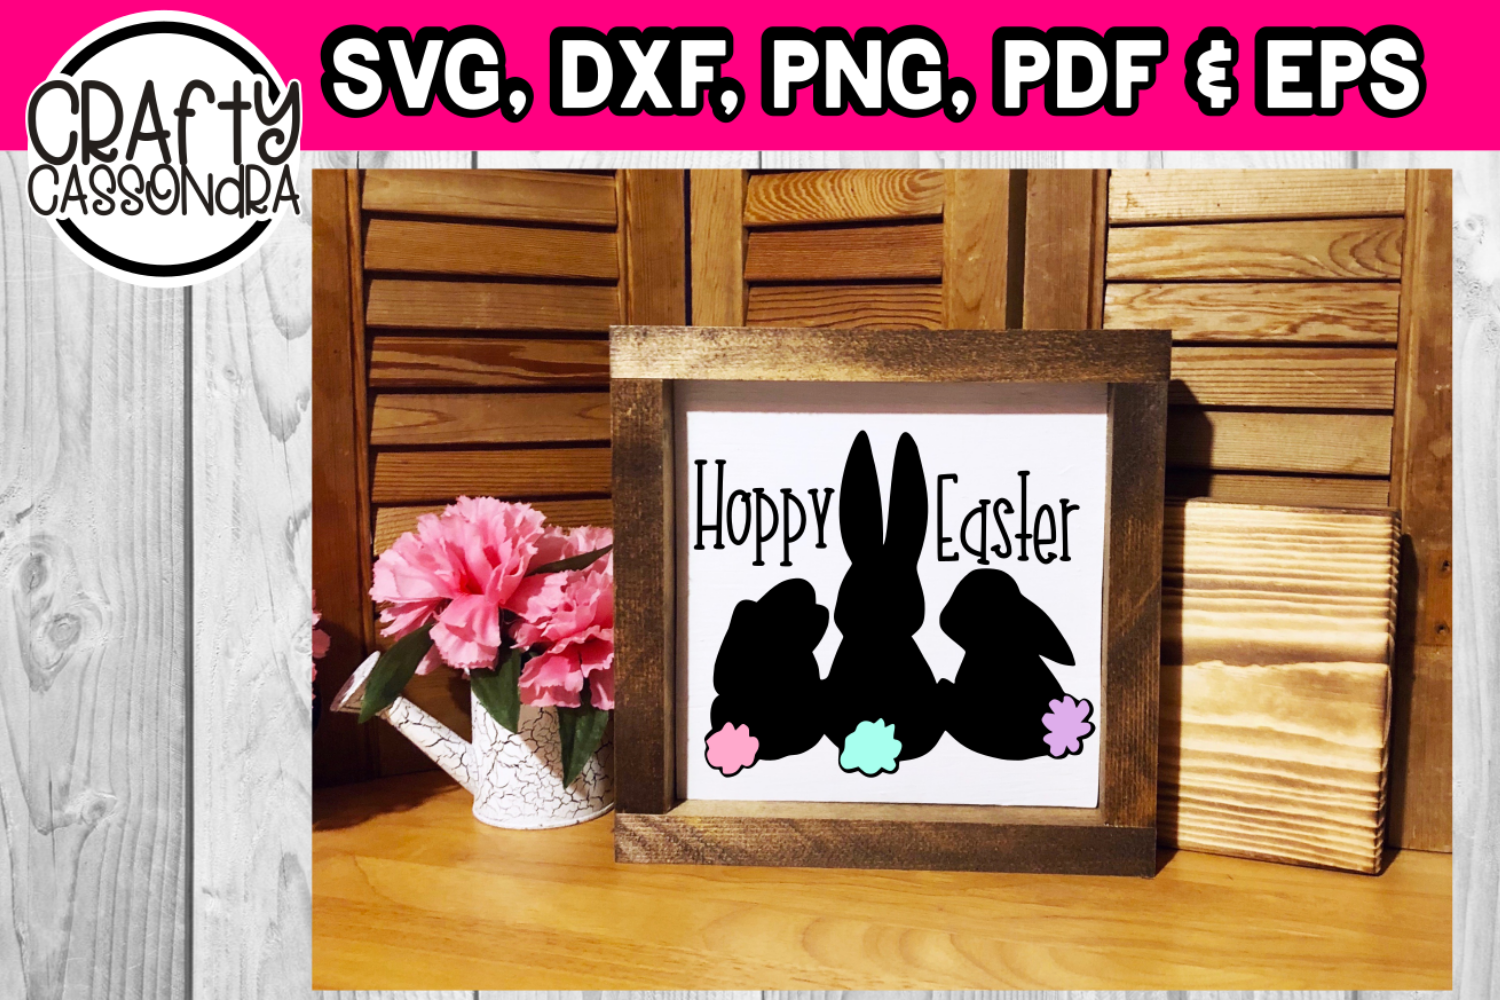 Cotton tail easter bunny svg / dxf example image 1